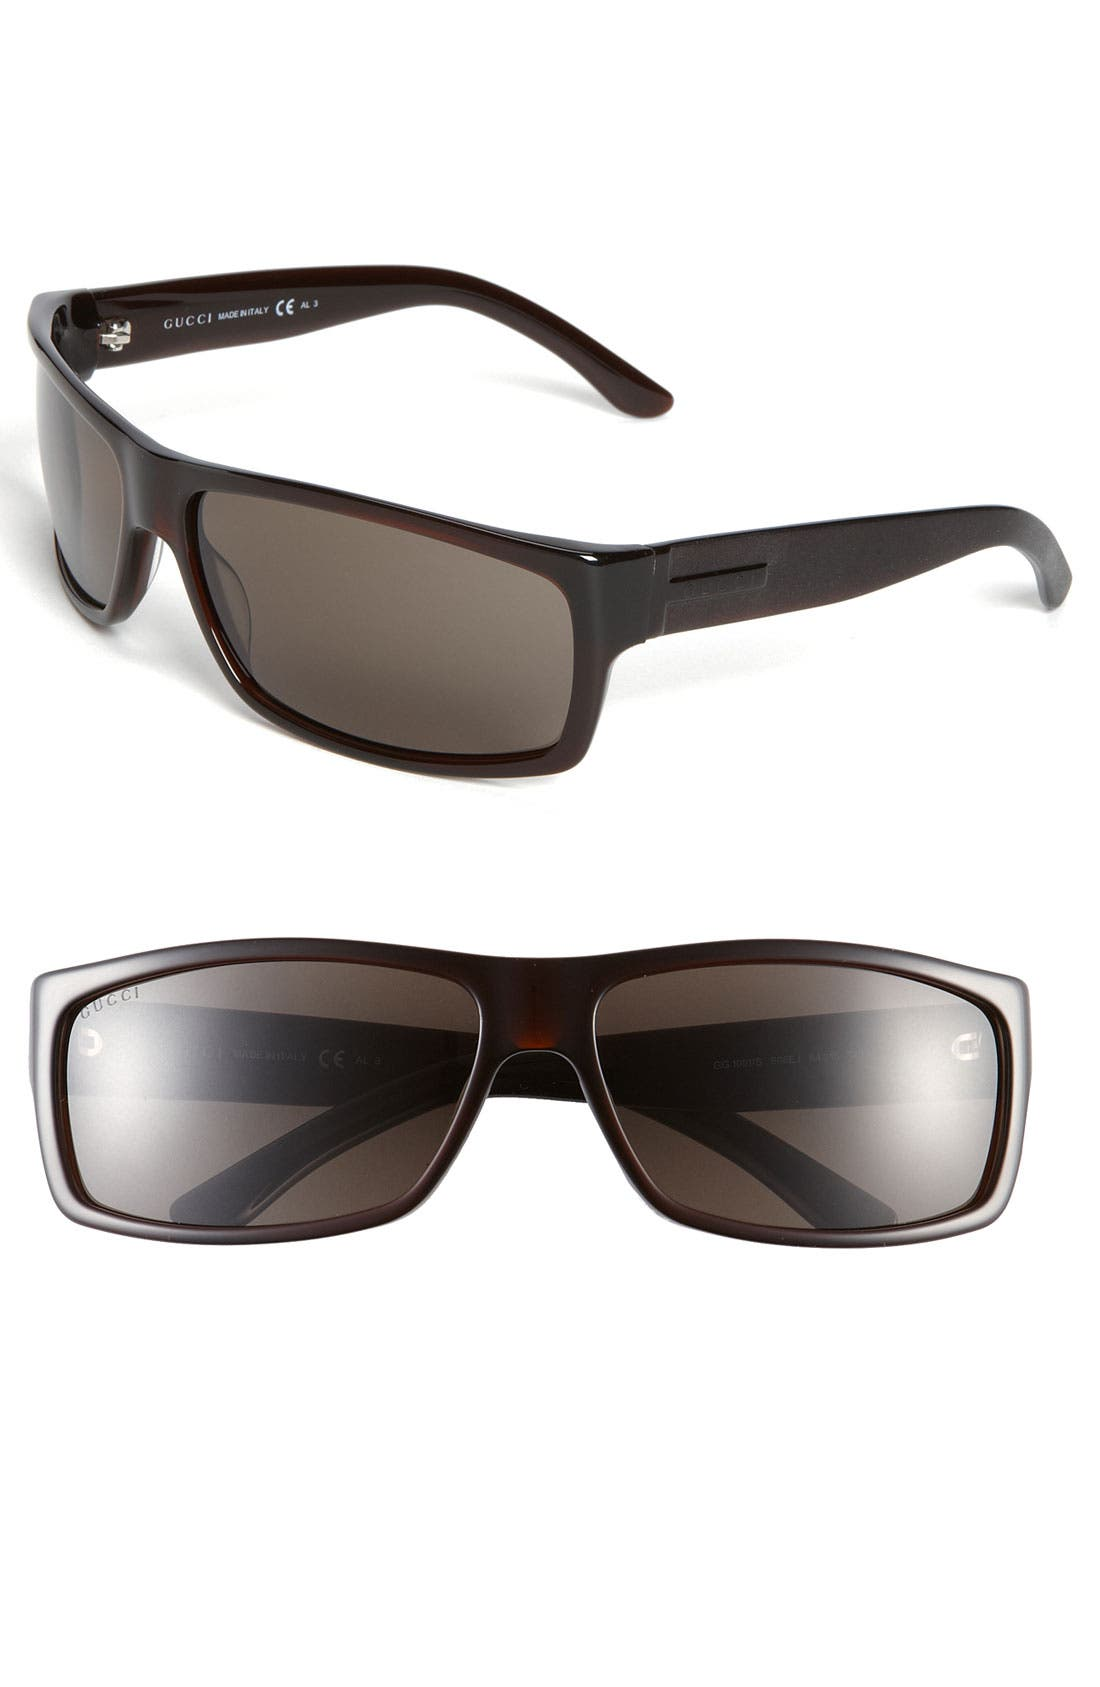 Main Image - Gucci 64mm Wrap Sunglasses